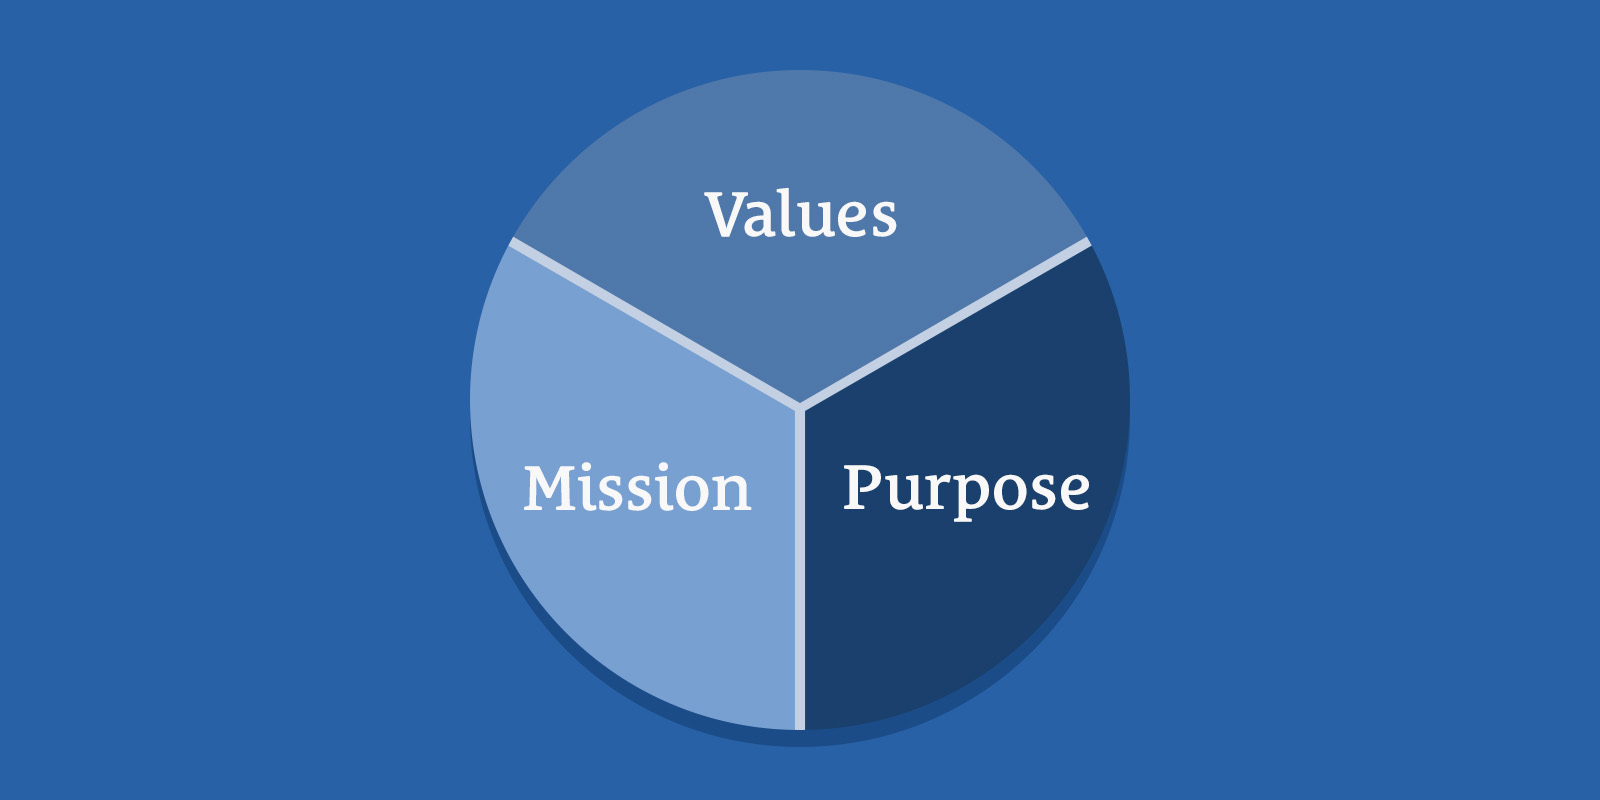 Values, Mission, and Purpose